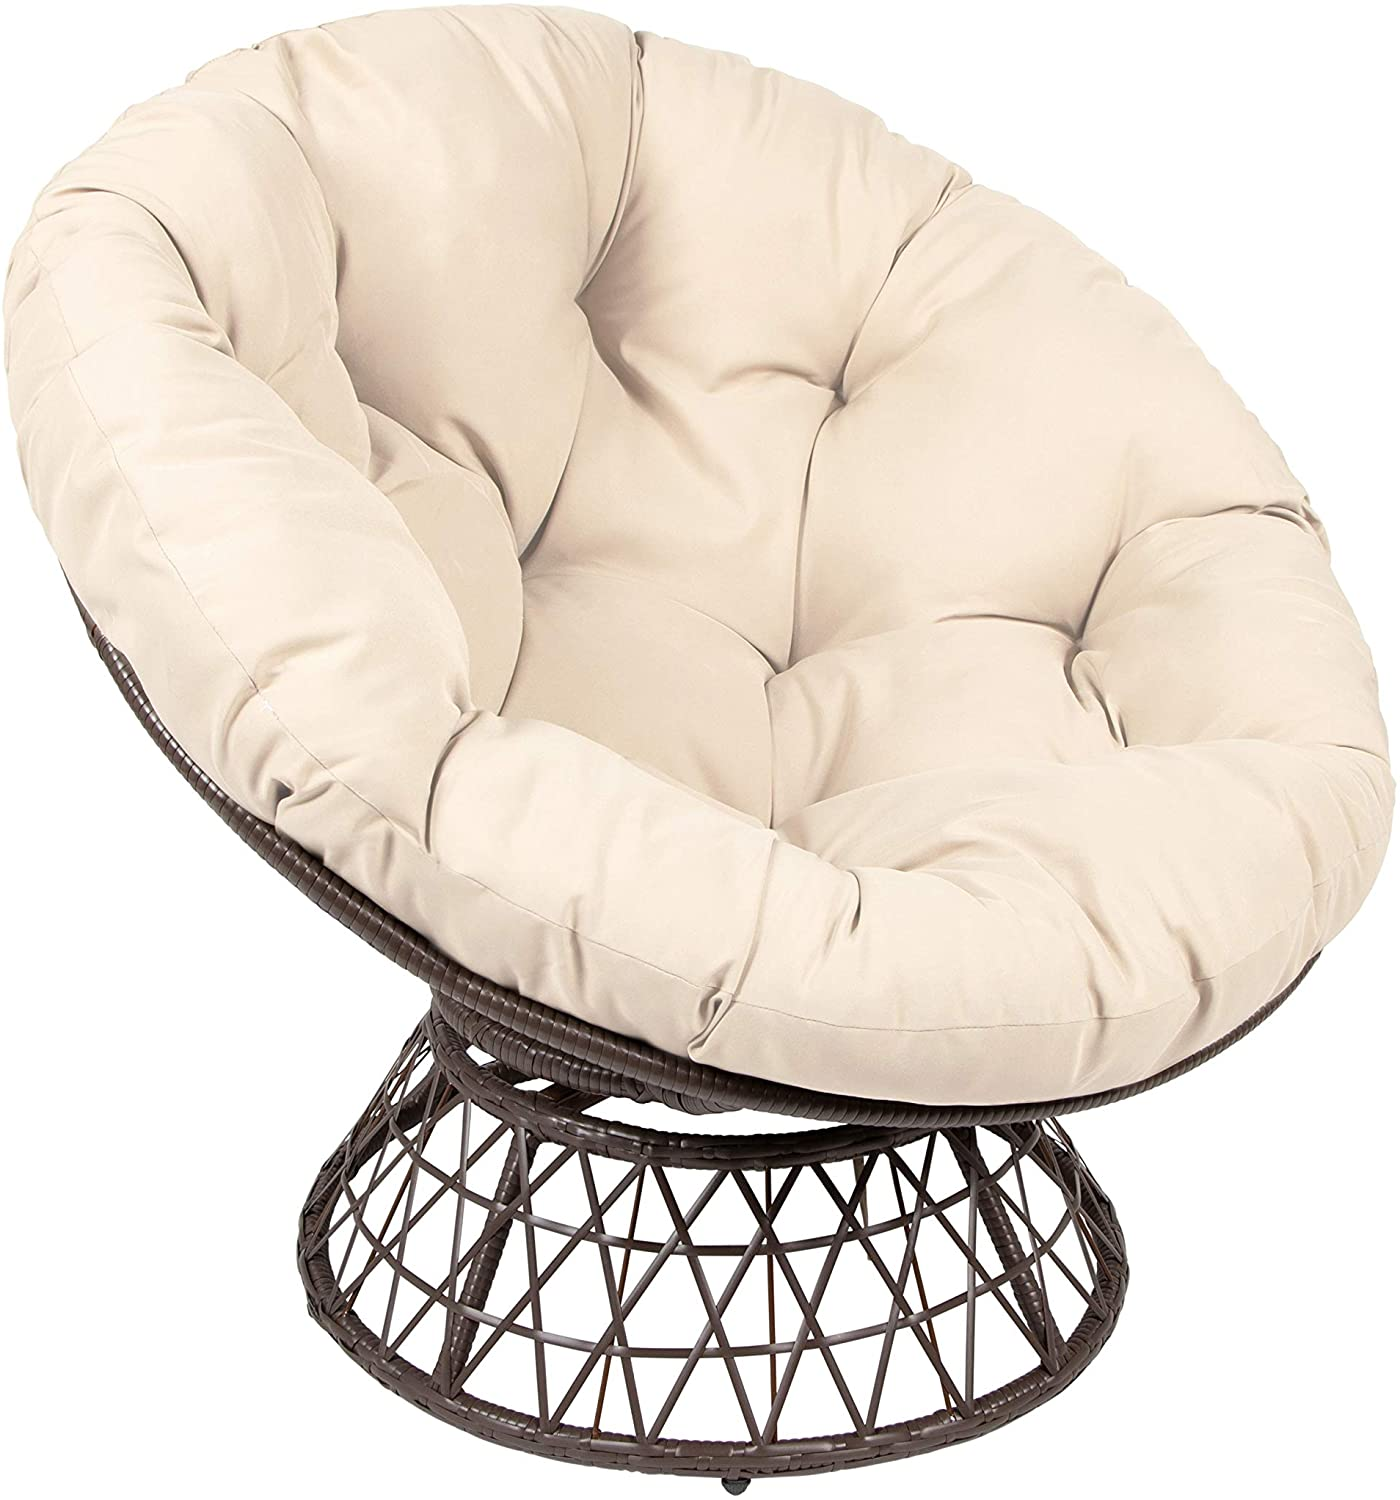 Shop Amazon.com: Milliard Papasan Chair with 360-degree Swivel (Brown and Beige): Kitchen & Dining from Amazon on Openhaus